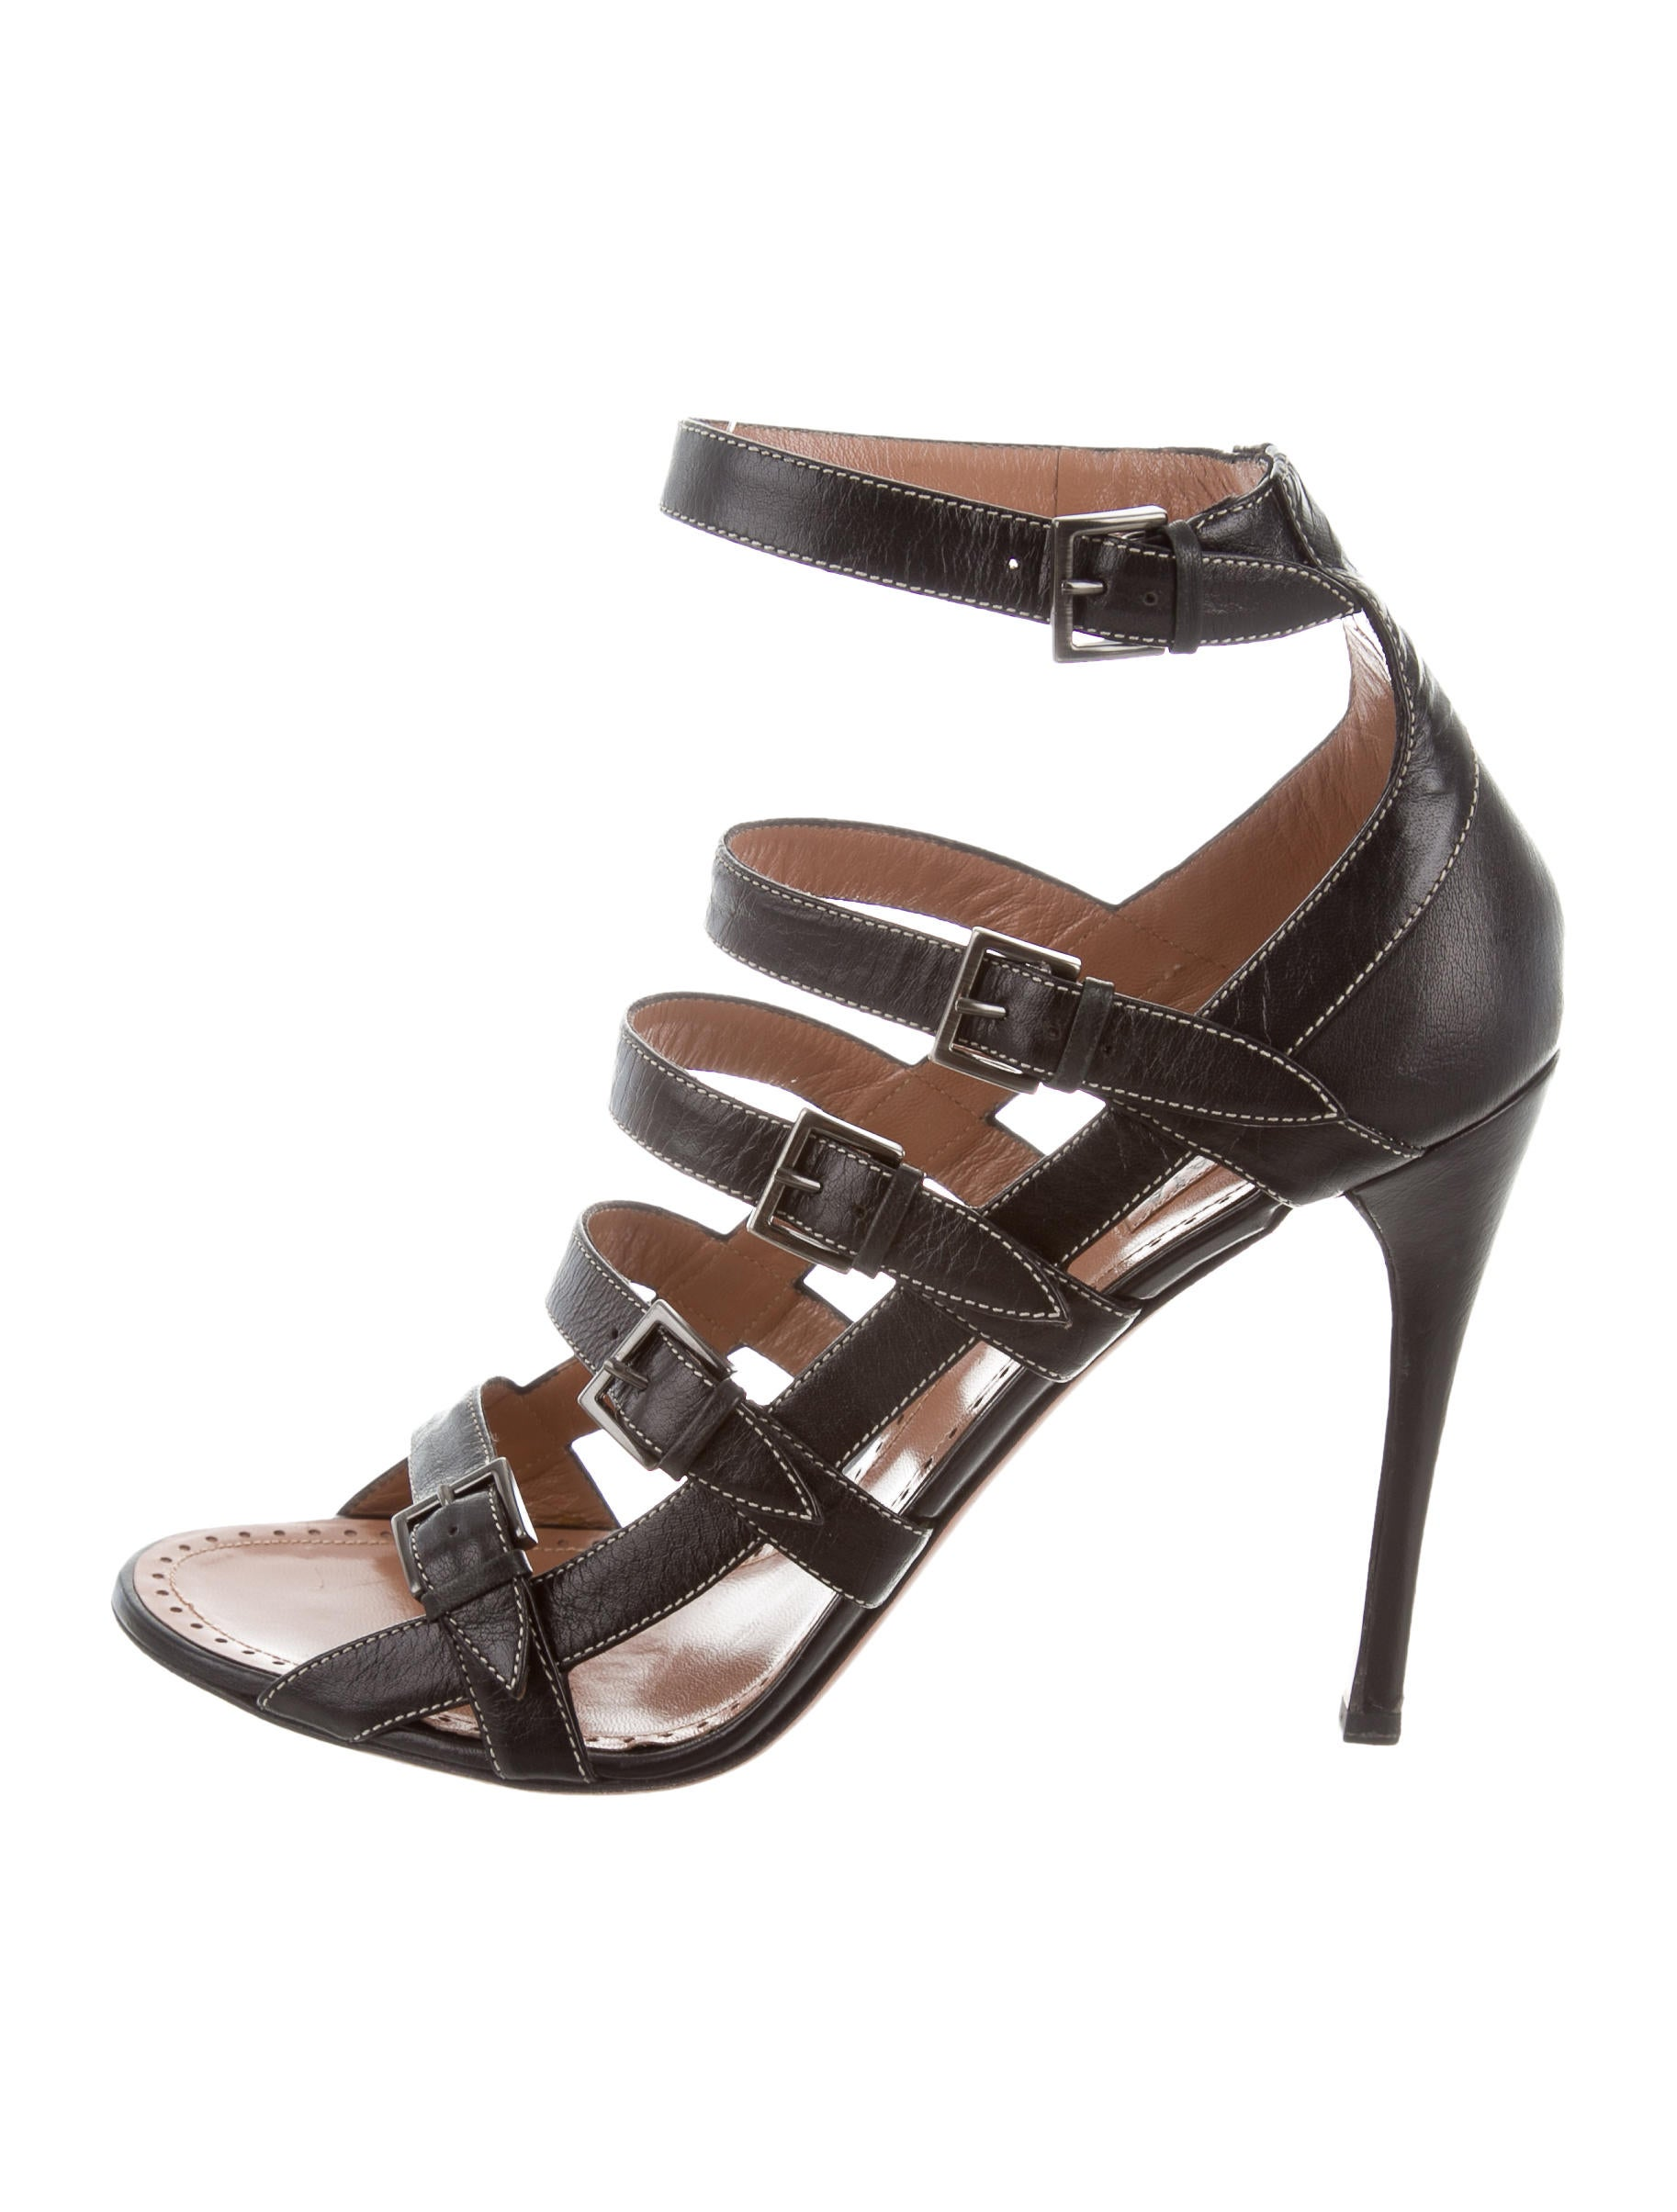 Alaïa Jewel-Embellished Cage Sandals fake cheap price sale best place low cost sale online 6VJimhb